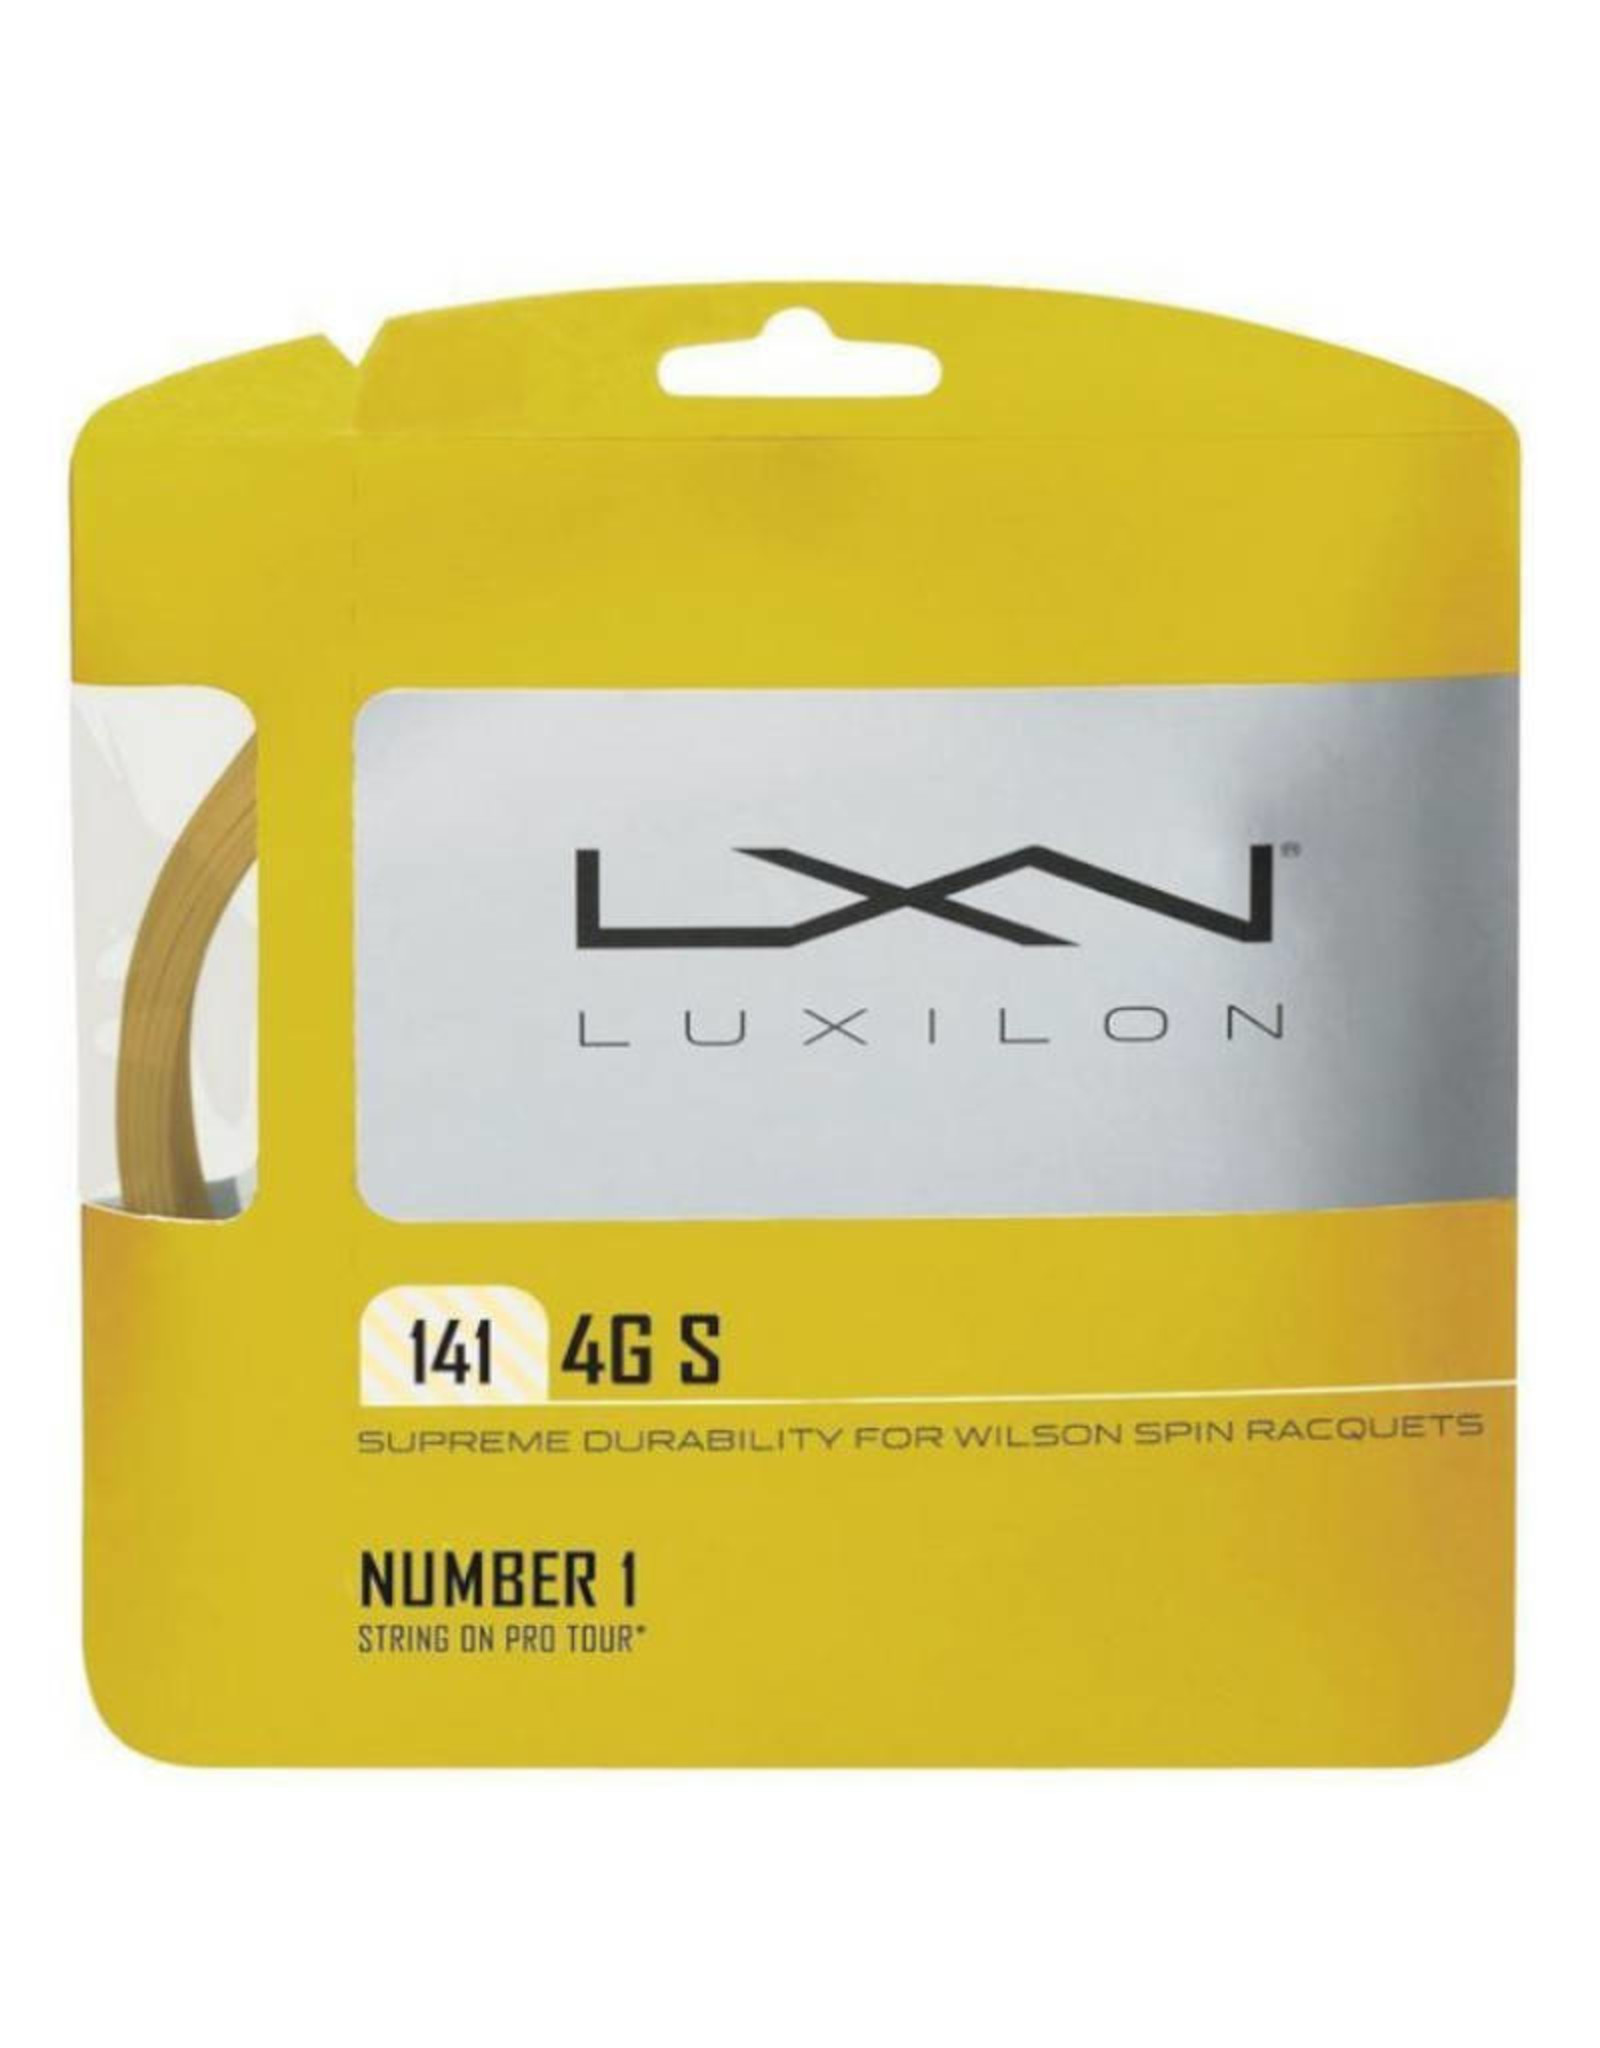 LUXILON 4G S 141 FULL SET